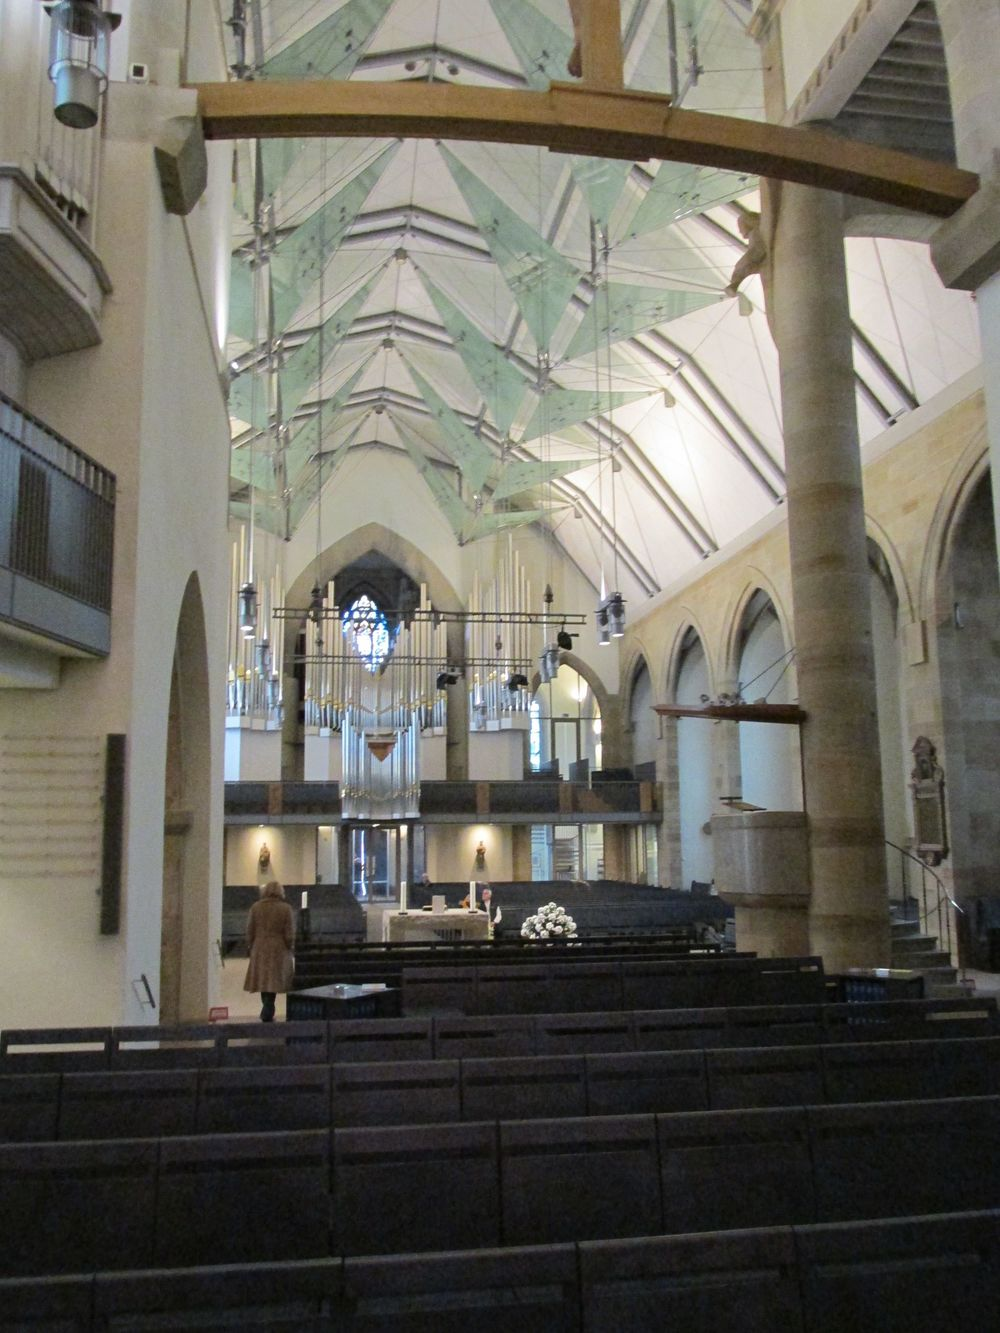 The Stiftskirche restored. A 1950s barrel vault slathered with asbestos was removed in favor of a gothic quotation in the vaulting and glass panels during a renovation completed in 2003.